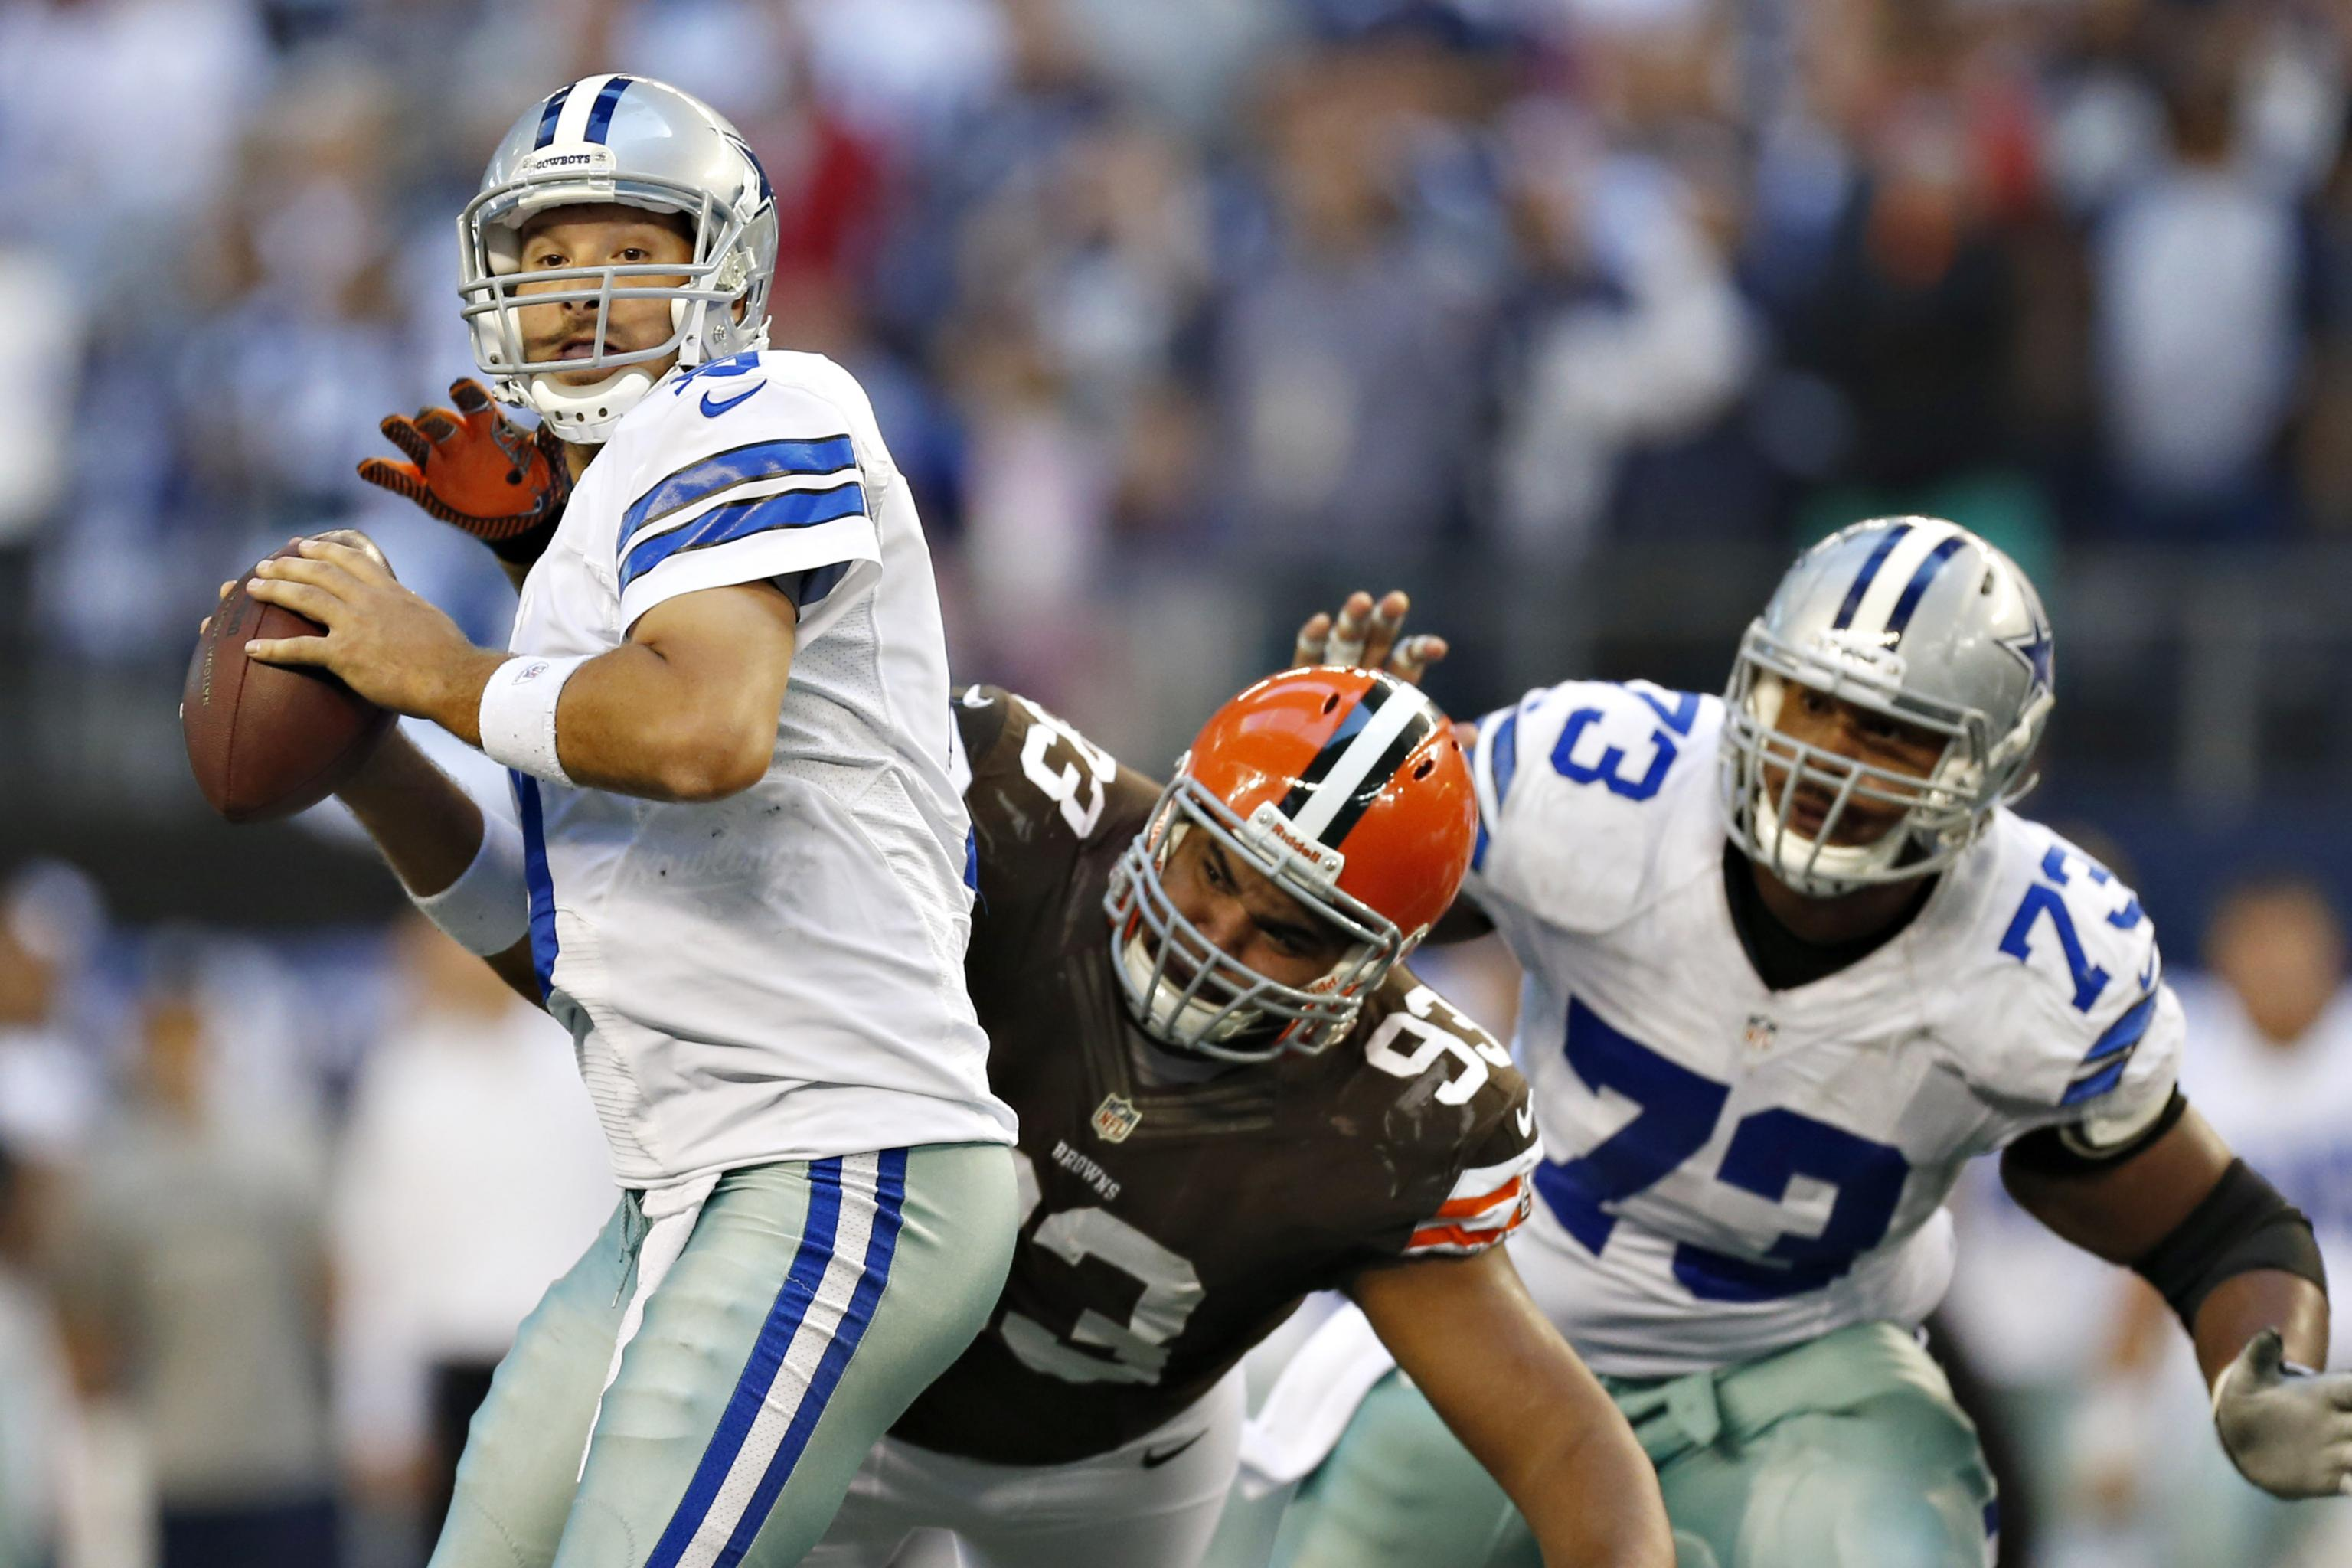 Cowboys redskins betting previews utep basketball players betting